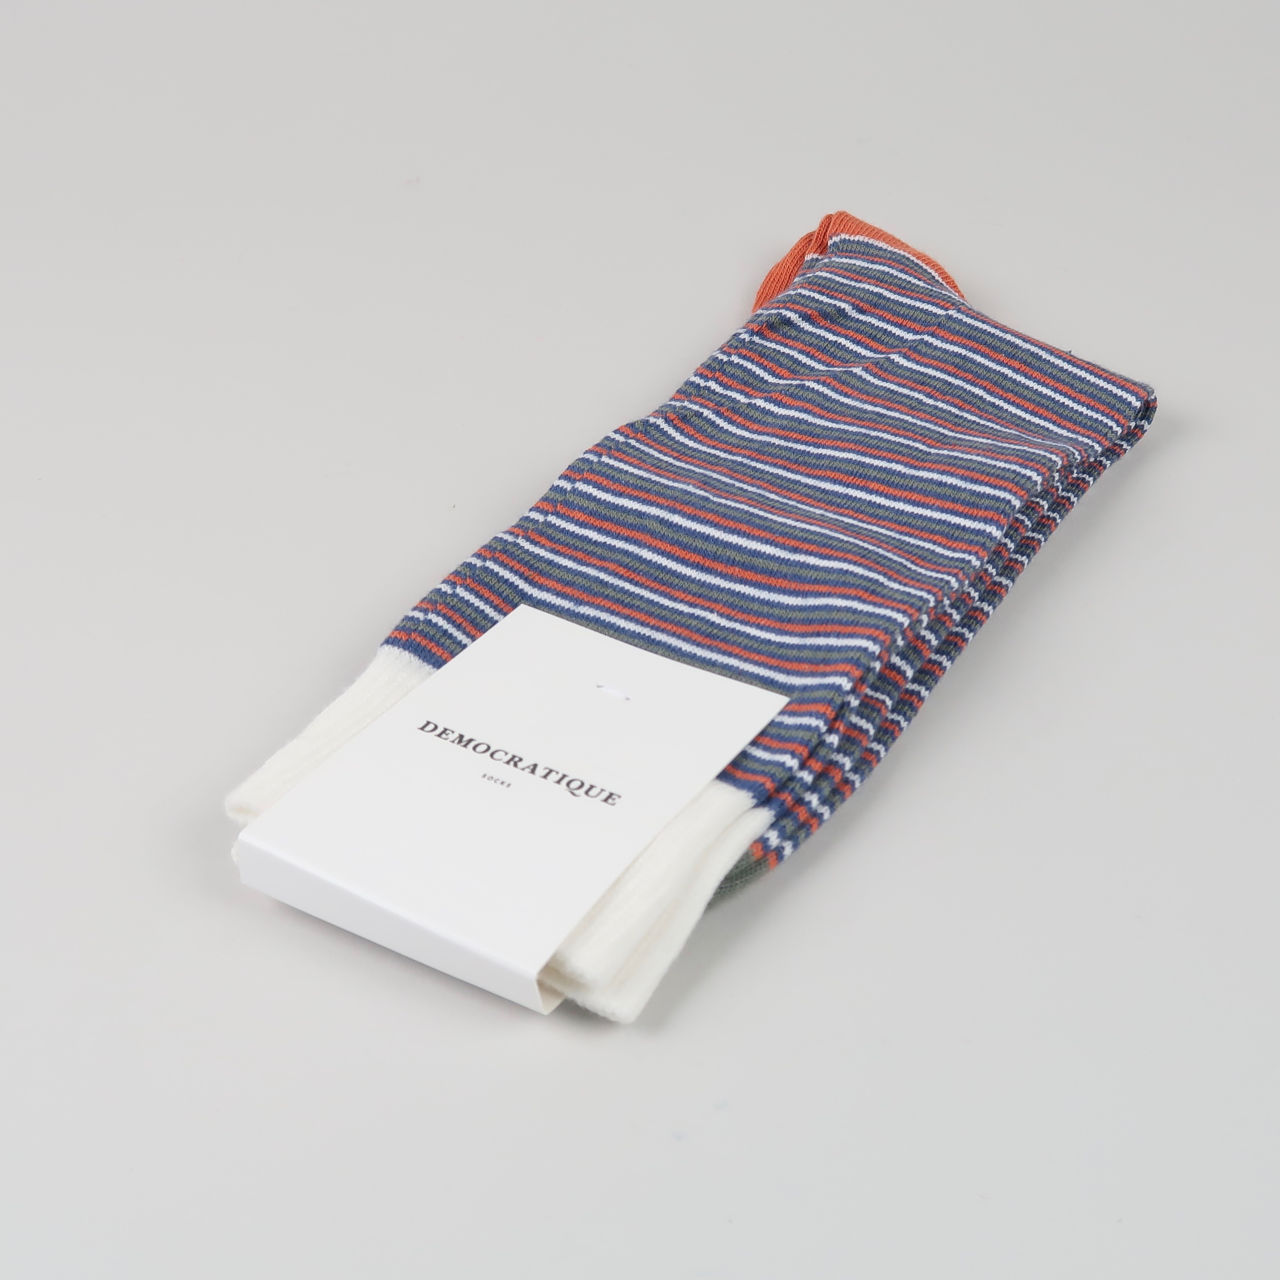 Men's Socks - Ultralight Stripes - Dark Ocean Blue/Dusty Orange/Army/Off White